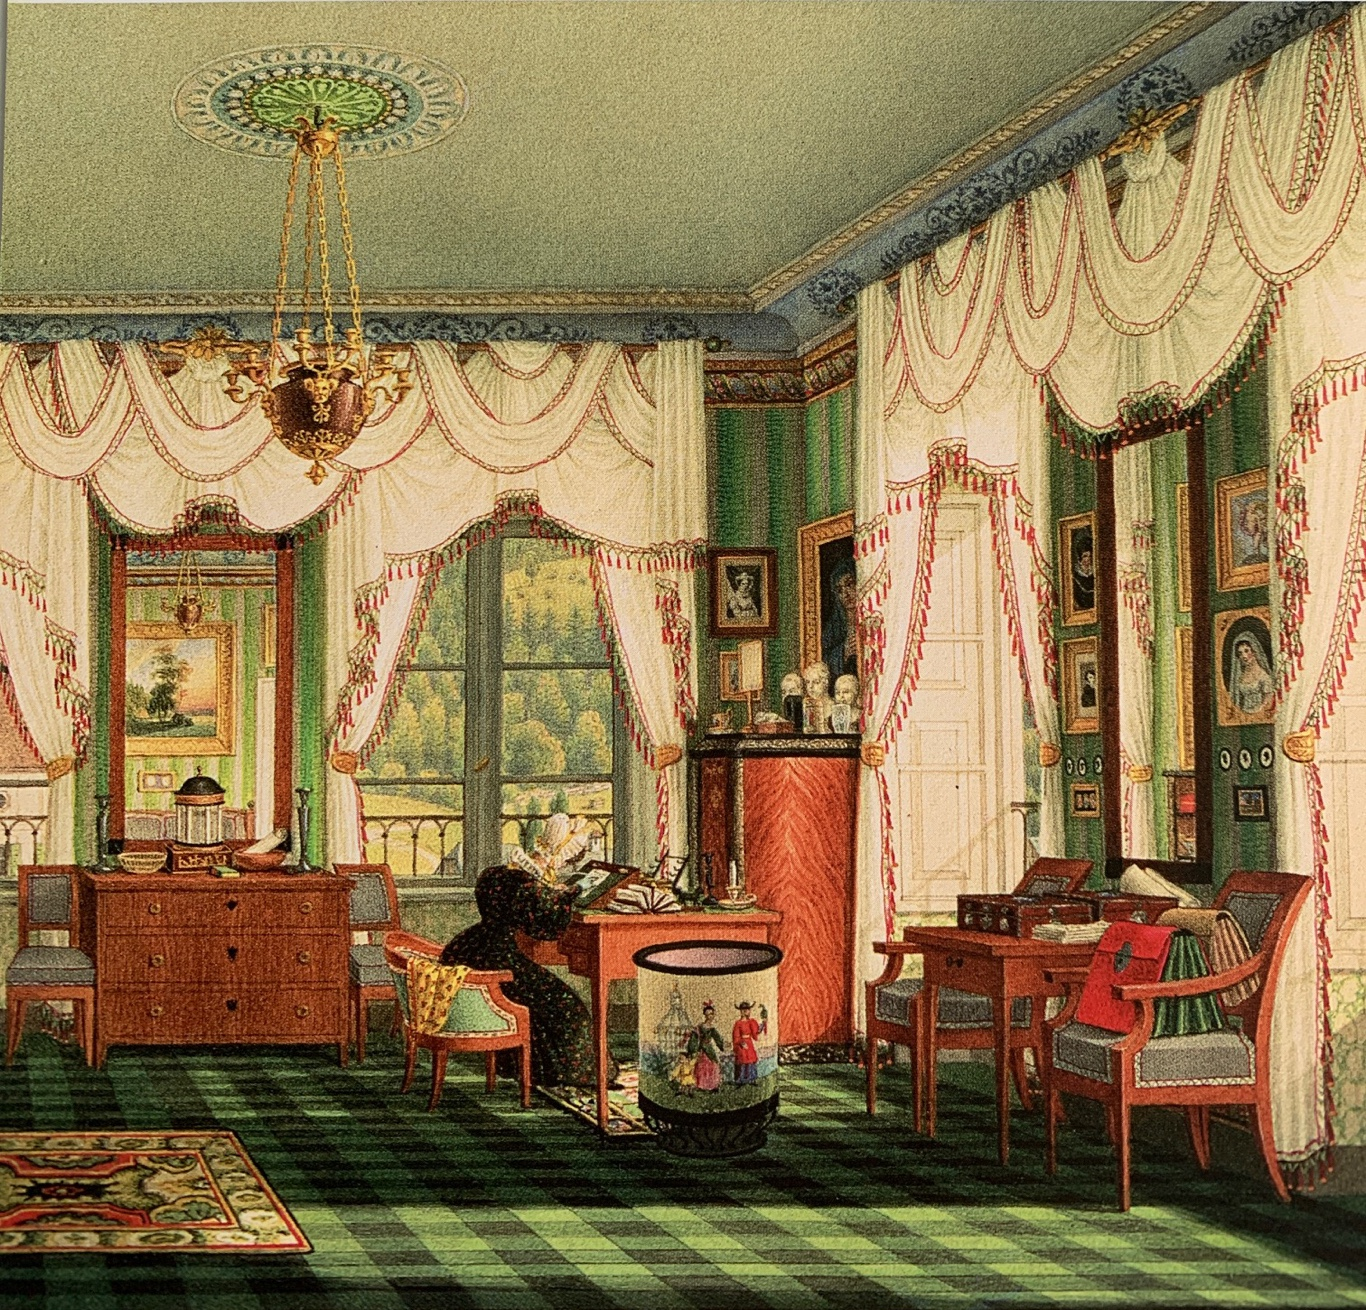 #Friday Painting: The Bedroom of Elizabeth of Bavaria by Franz Xavier Nachtmann